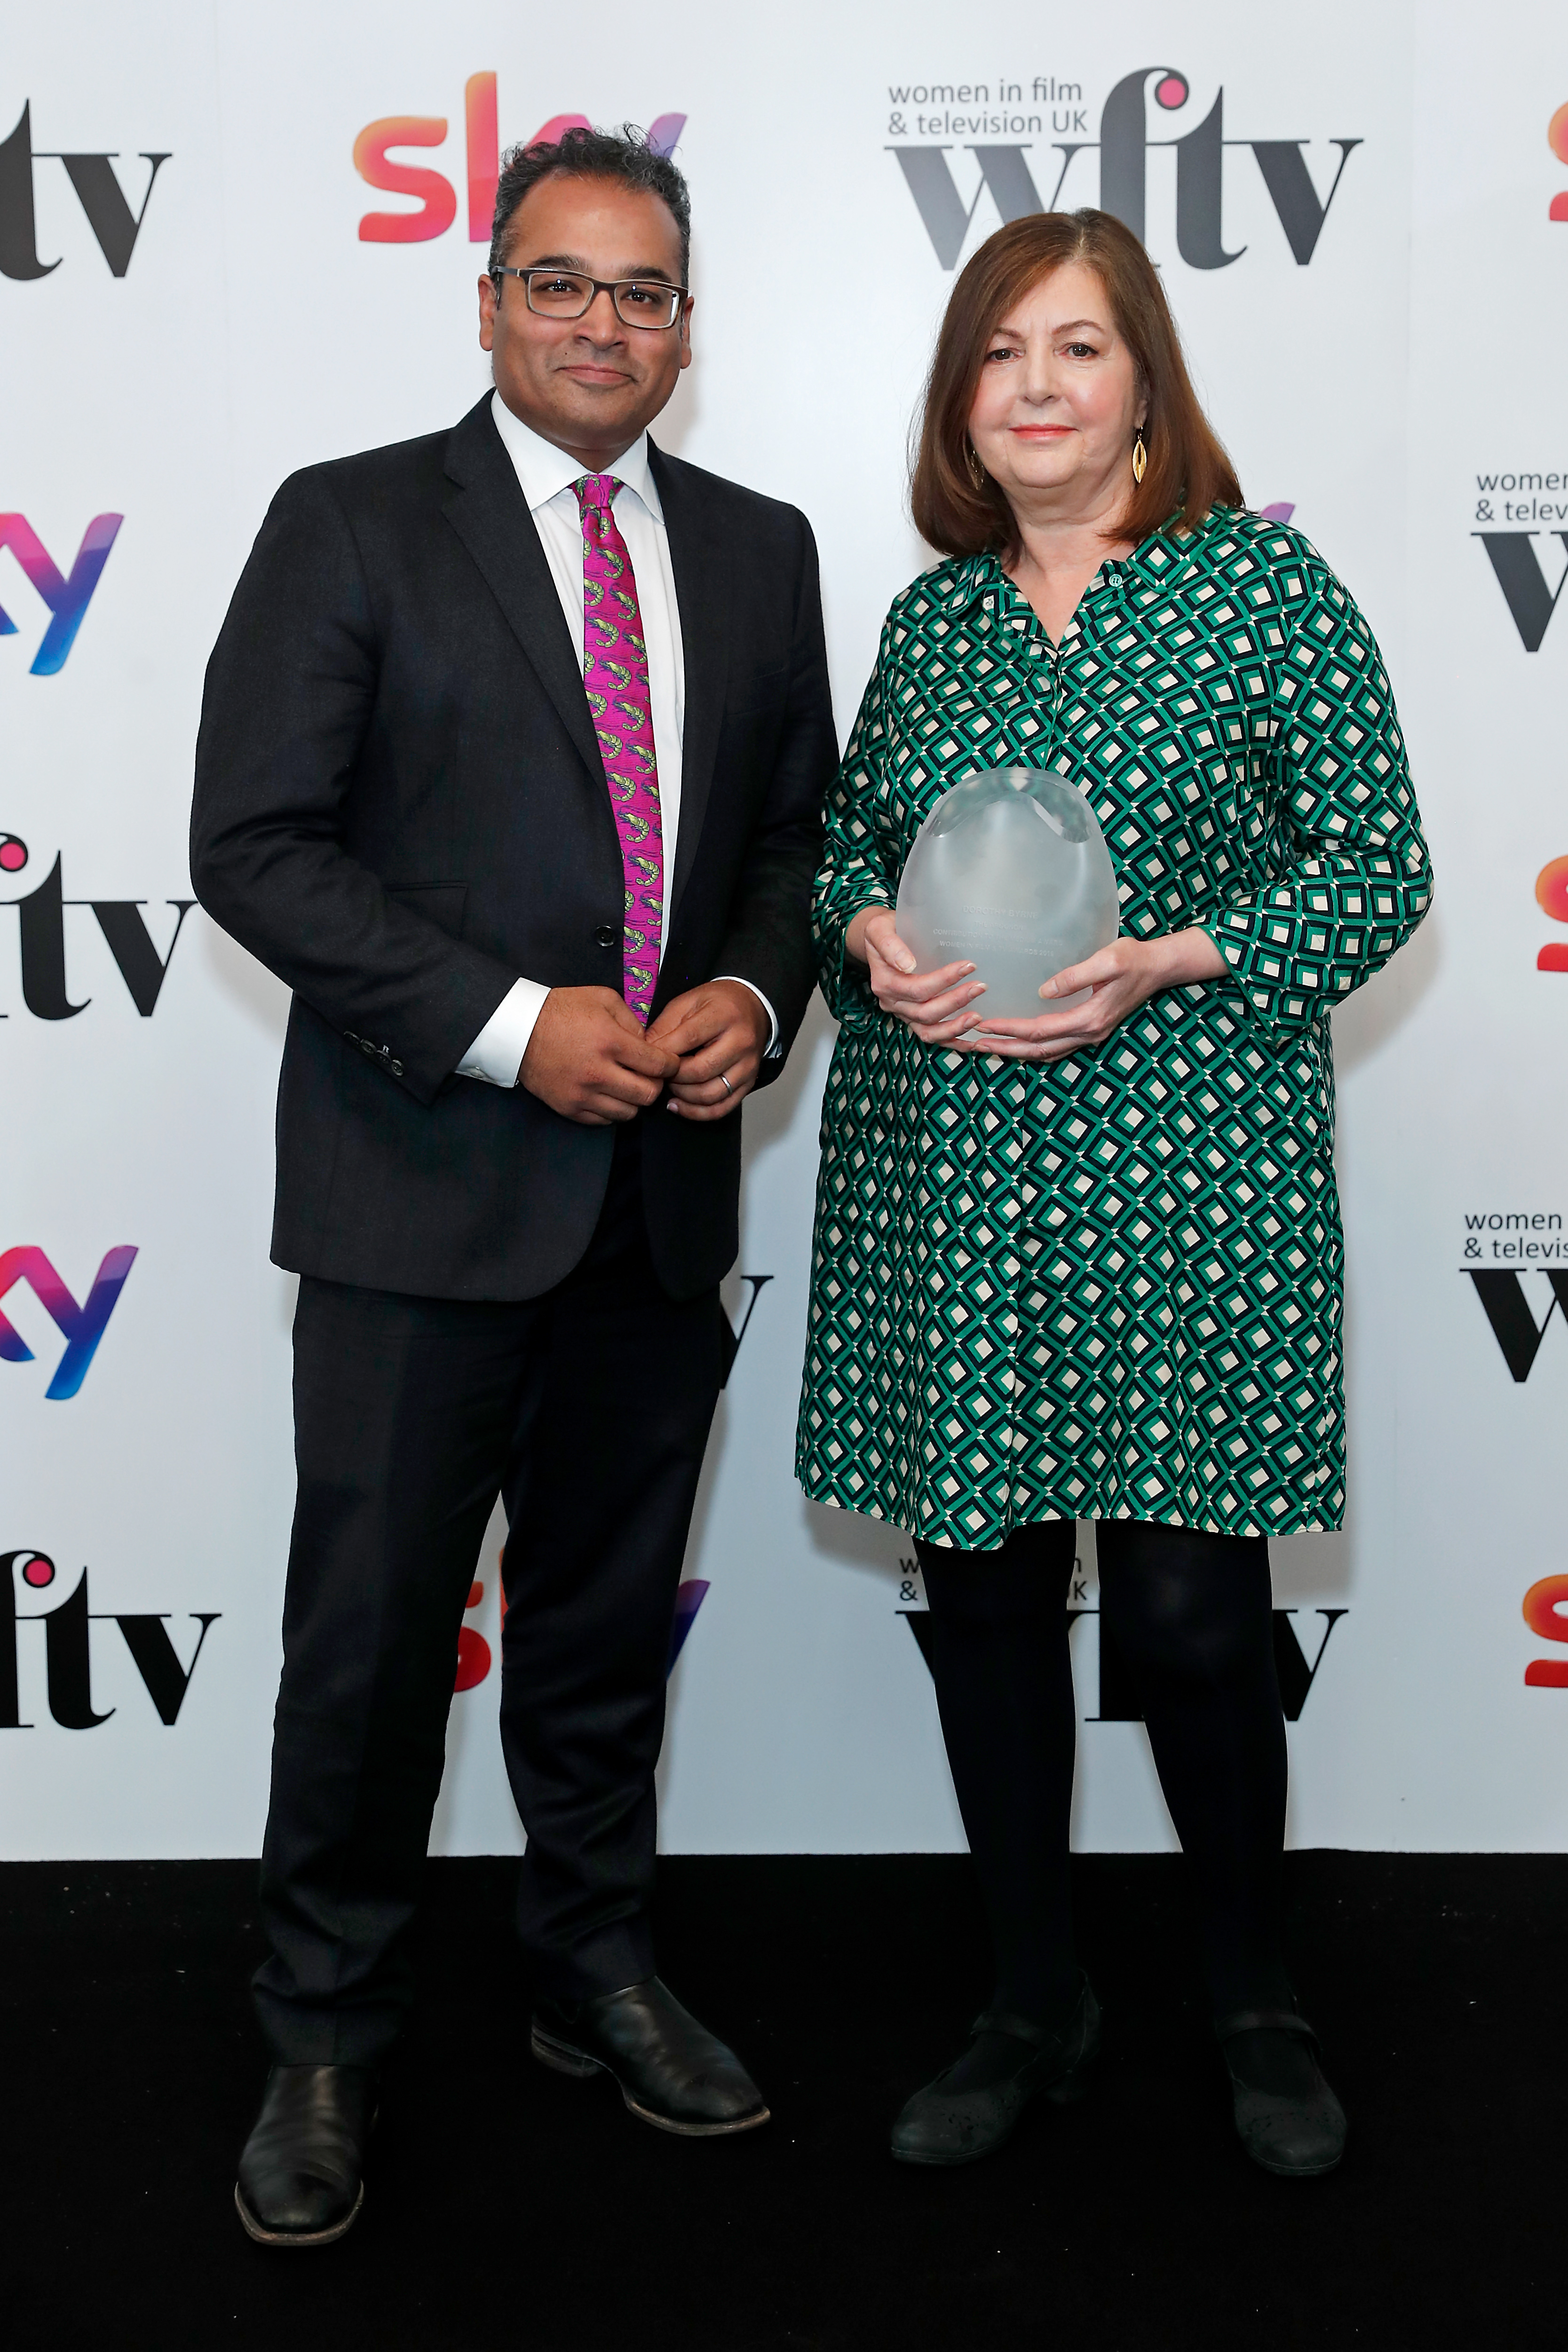 LONDON, ENGLAND - DECEMBER 06: Dorothy Byrne (R) winner of the Argonon Contribution to the Medium Award presented by Krishnan Guru- Murthy in the winners room at the Women in Film and TV Awards 2019 at Hilton Park Lane on December 06, 2019 in London, England. (Photo by David M. Benett/Dave Benett/Getty Images for Women in Film and TV)